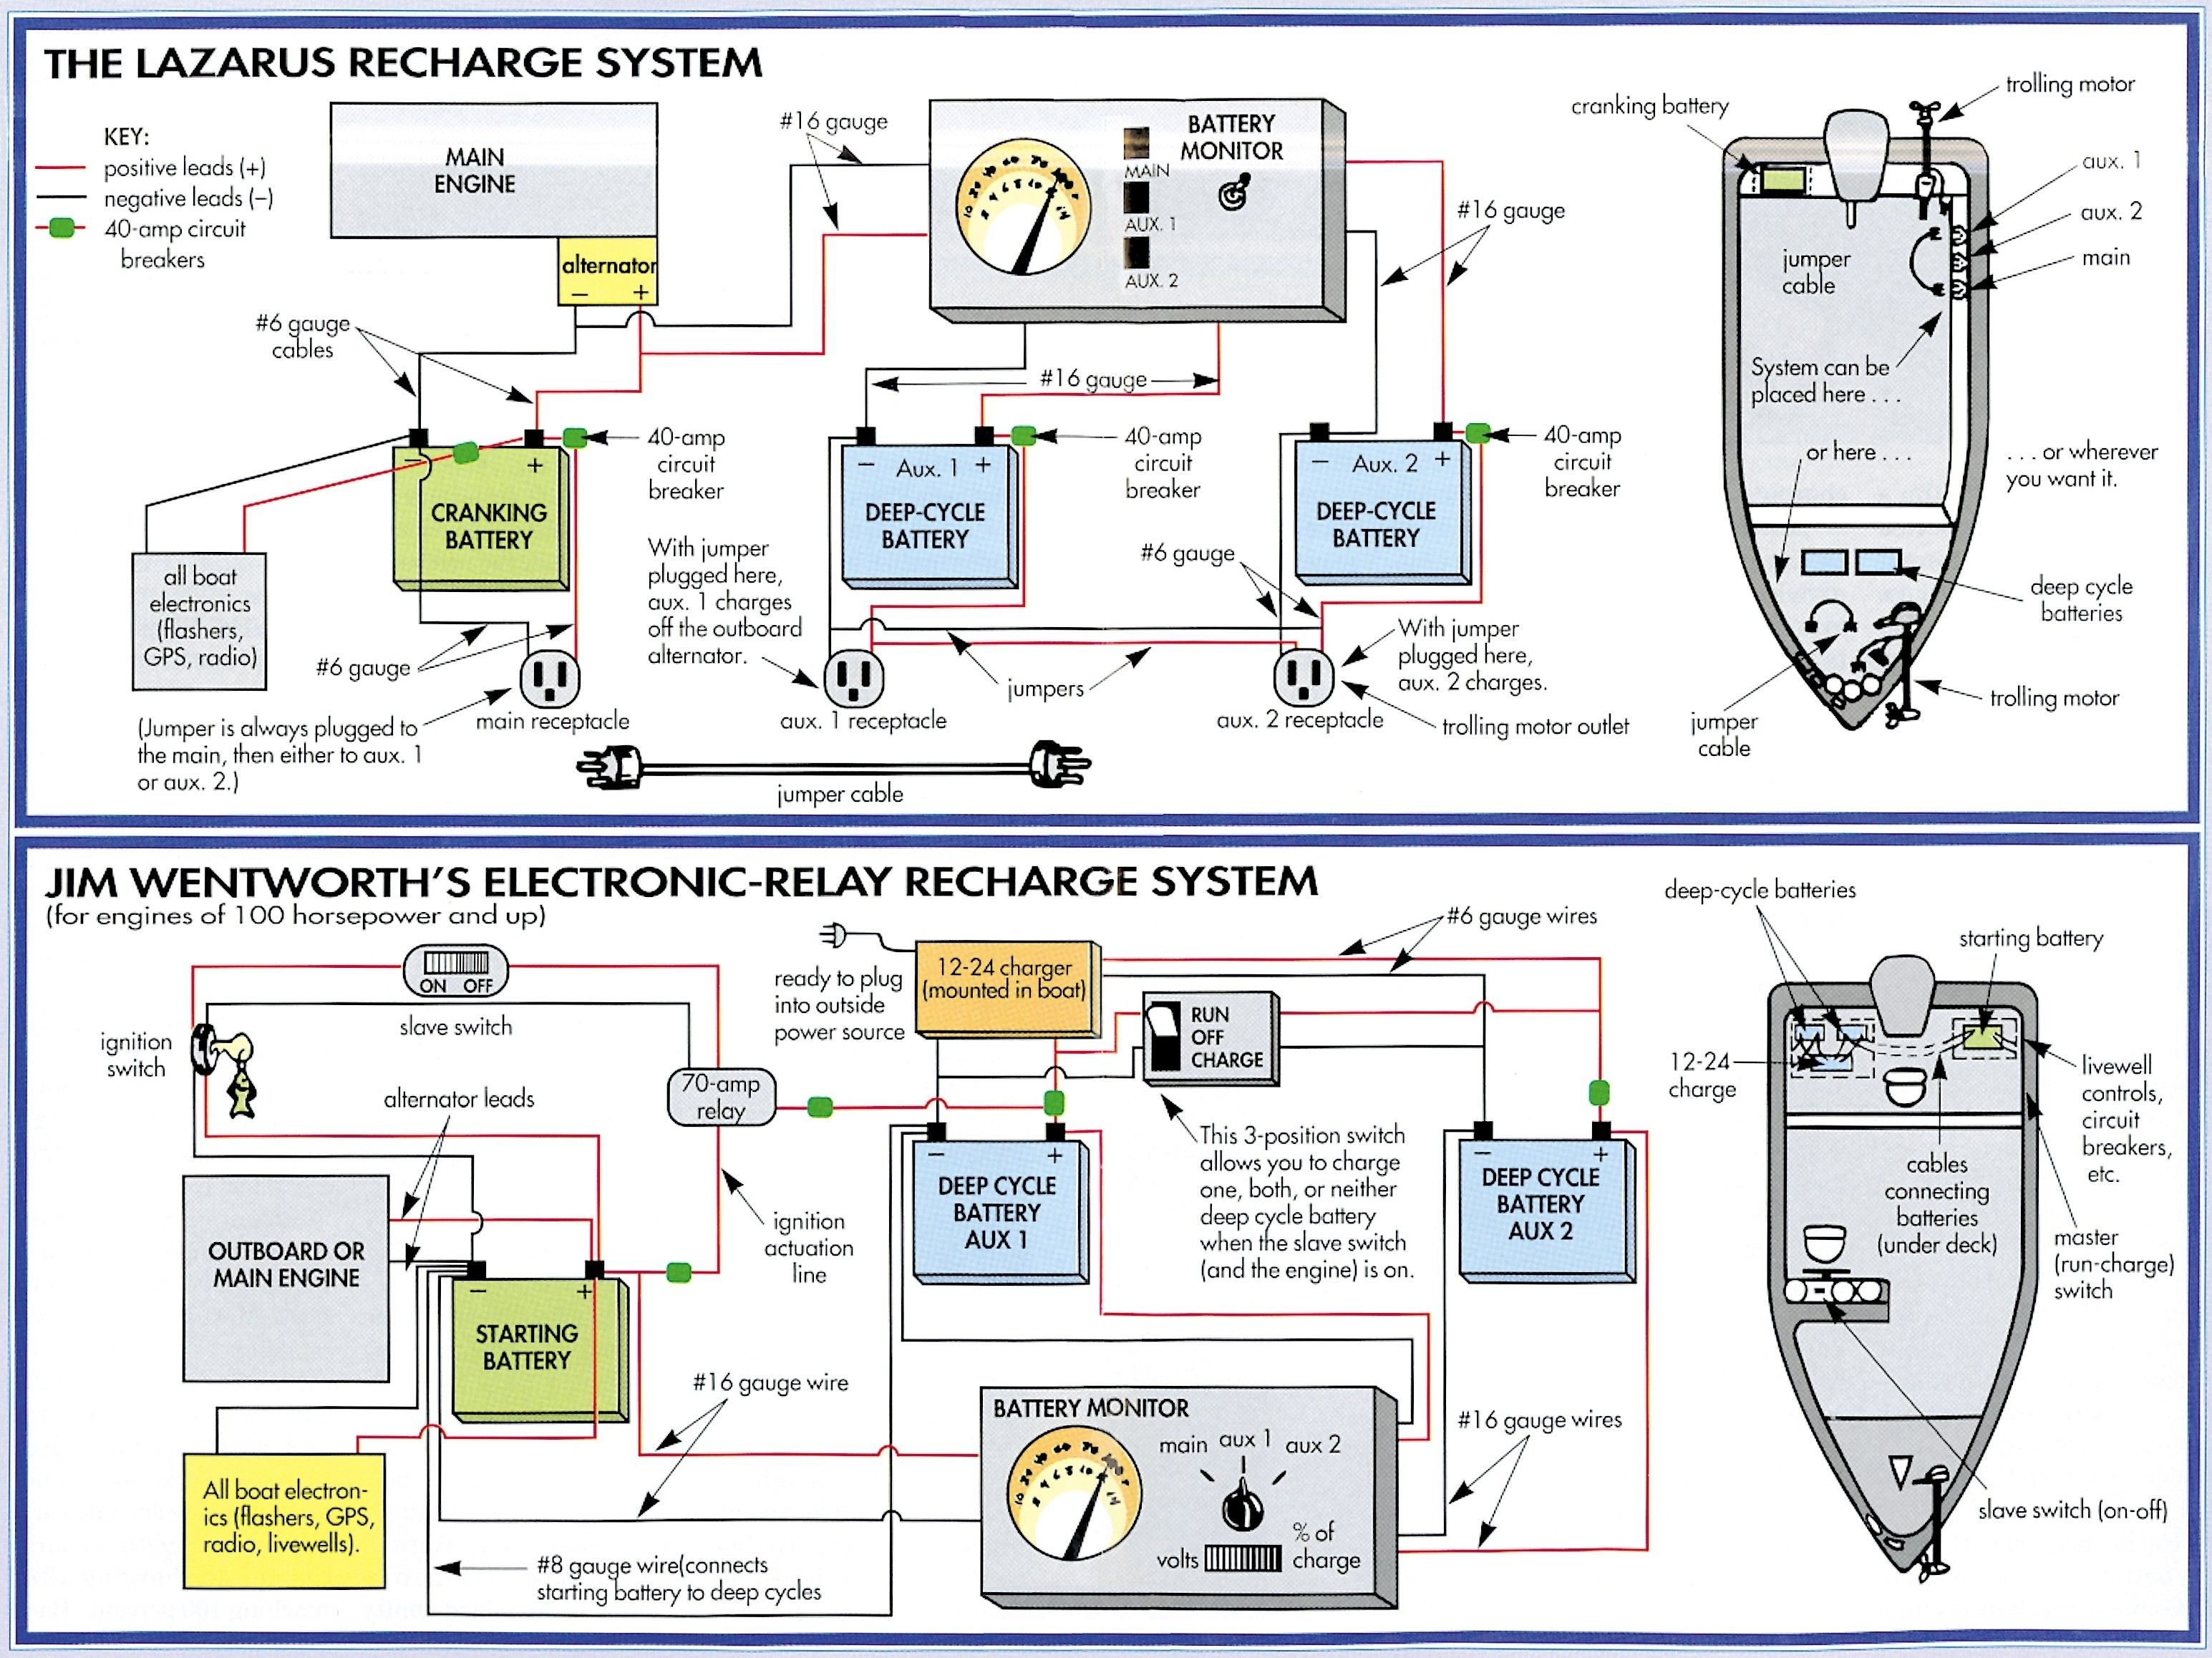 medium resolution of ranger bass boat wiring diagrams wiring diagramimage result for charging diagram for ranger bass boats 24